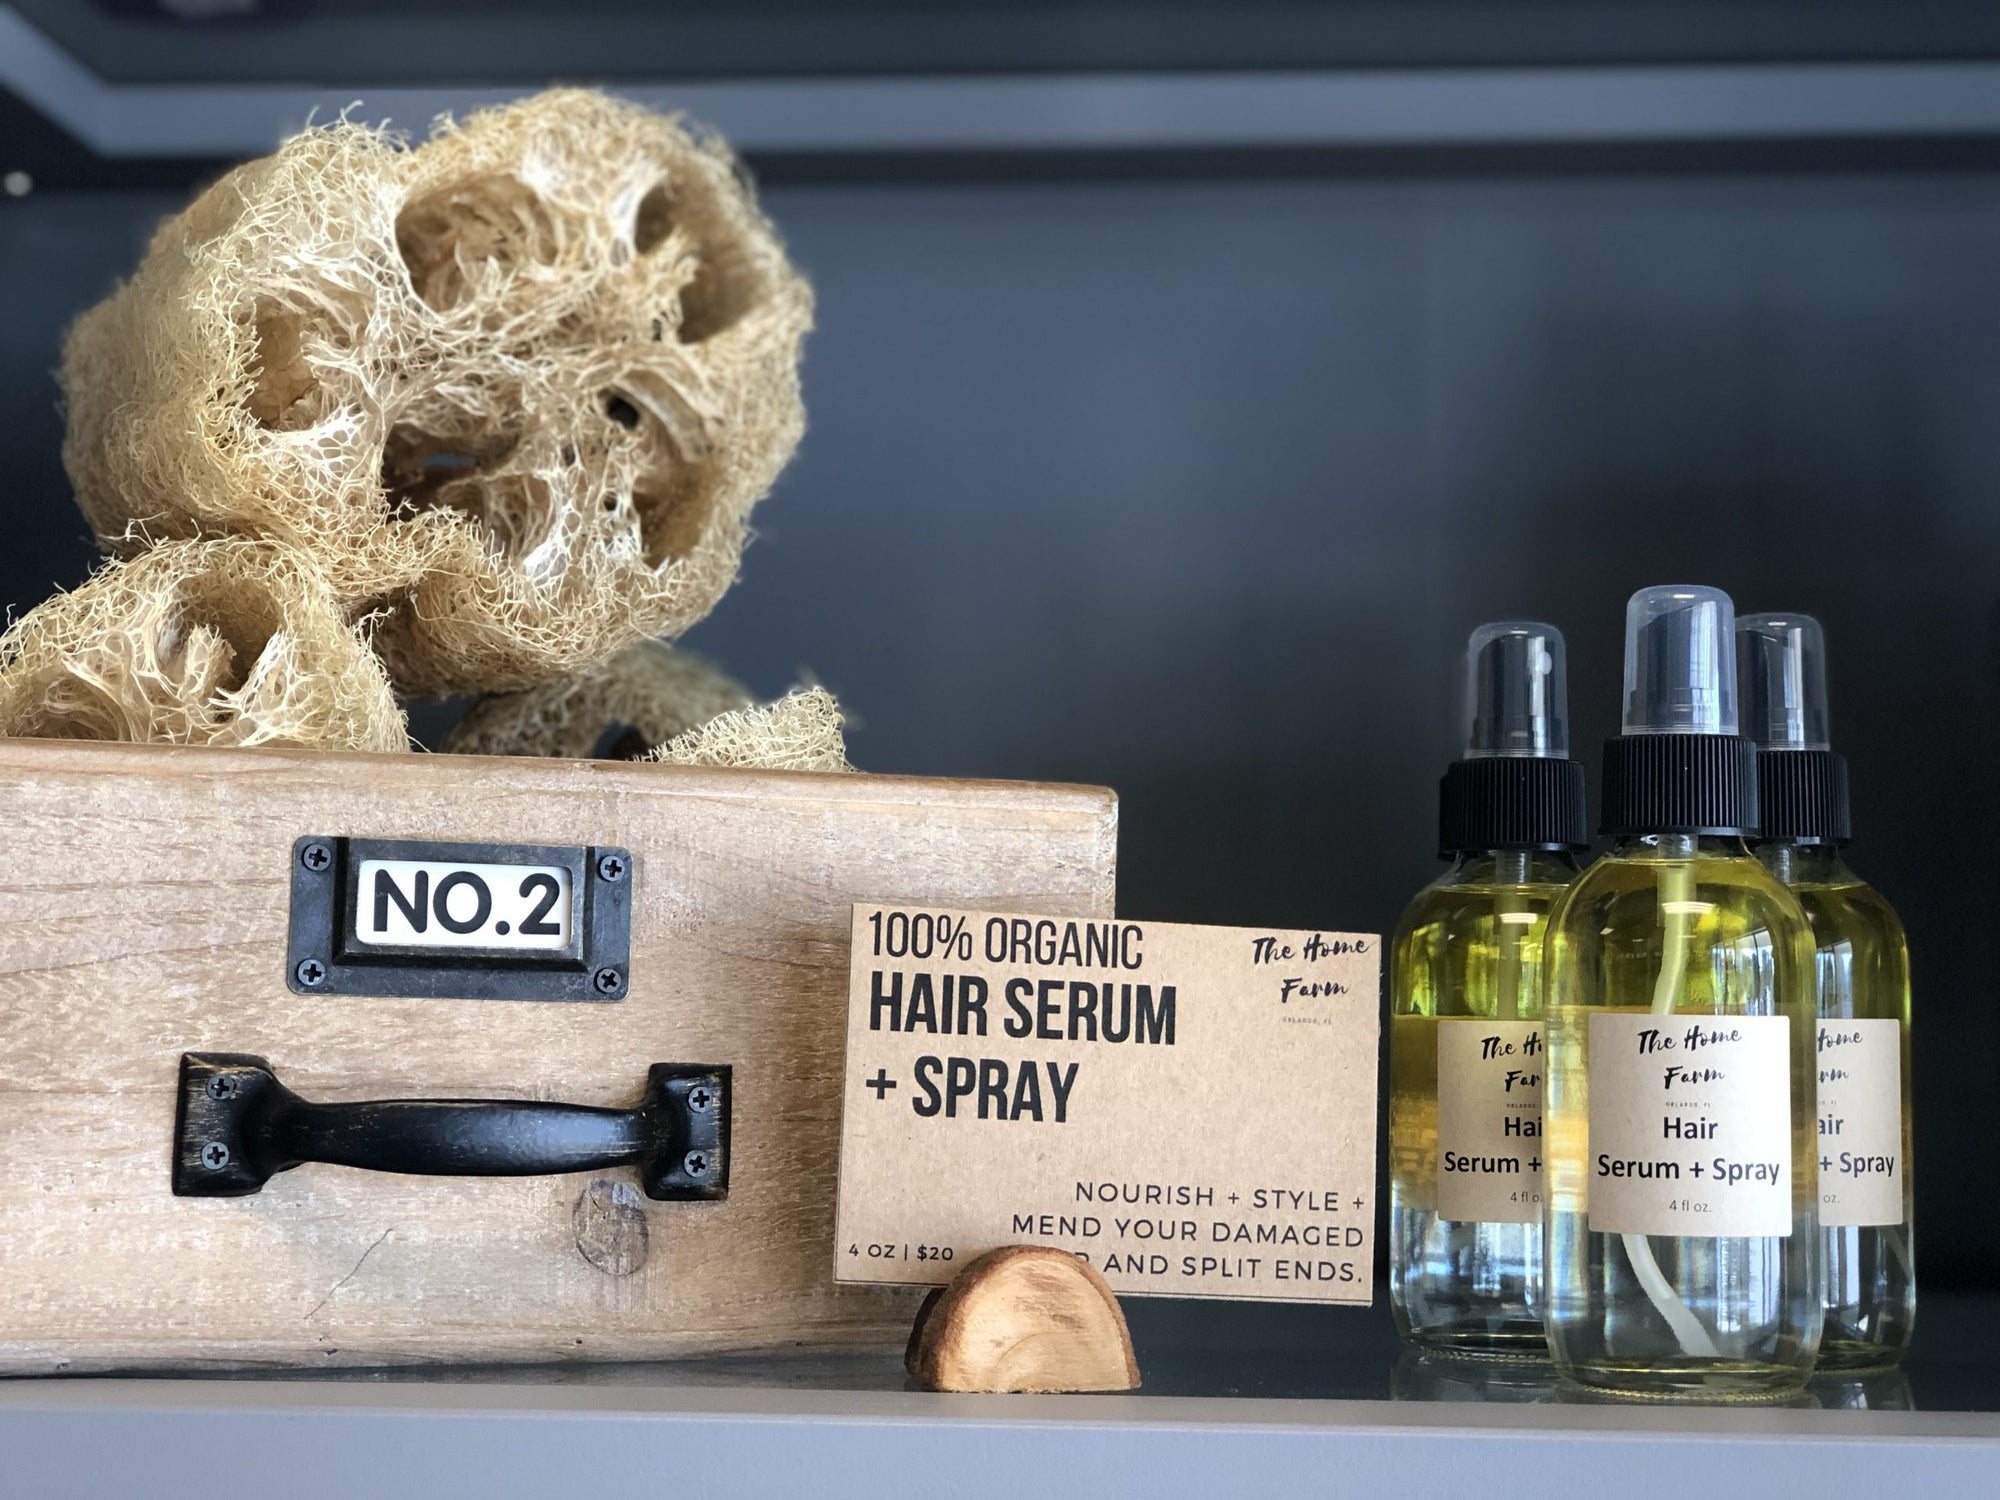 Hair Serum + Spray